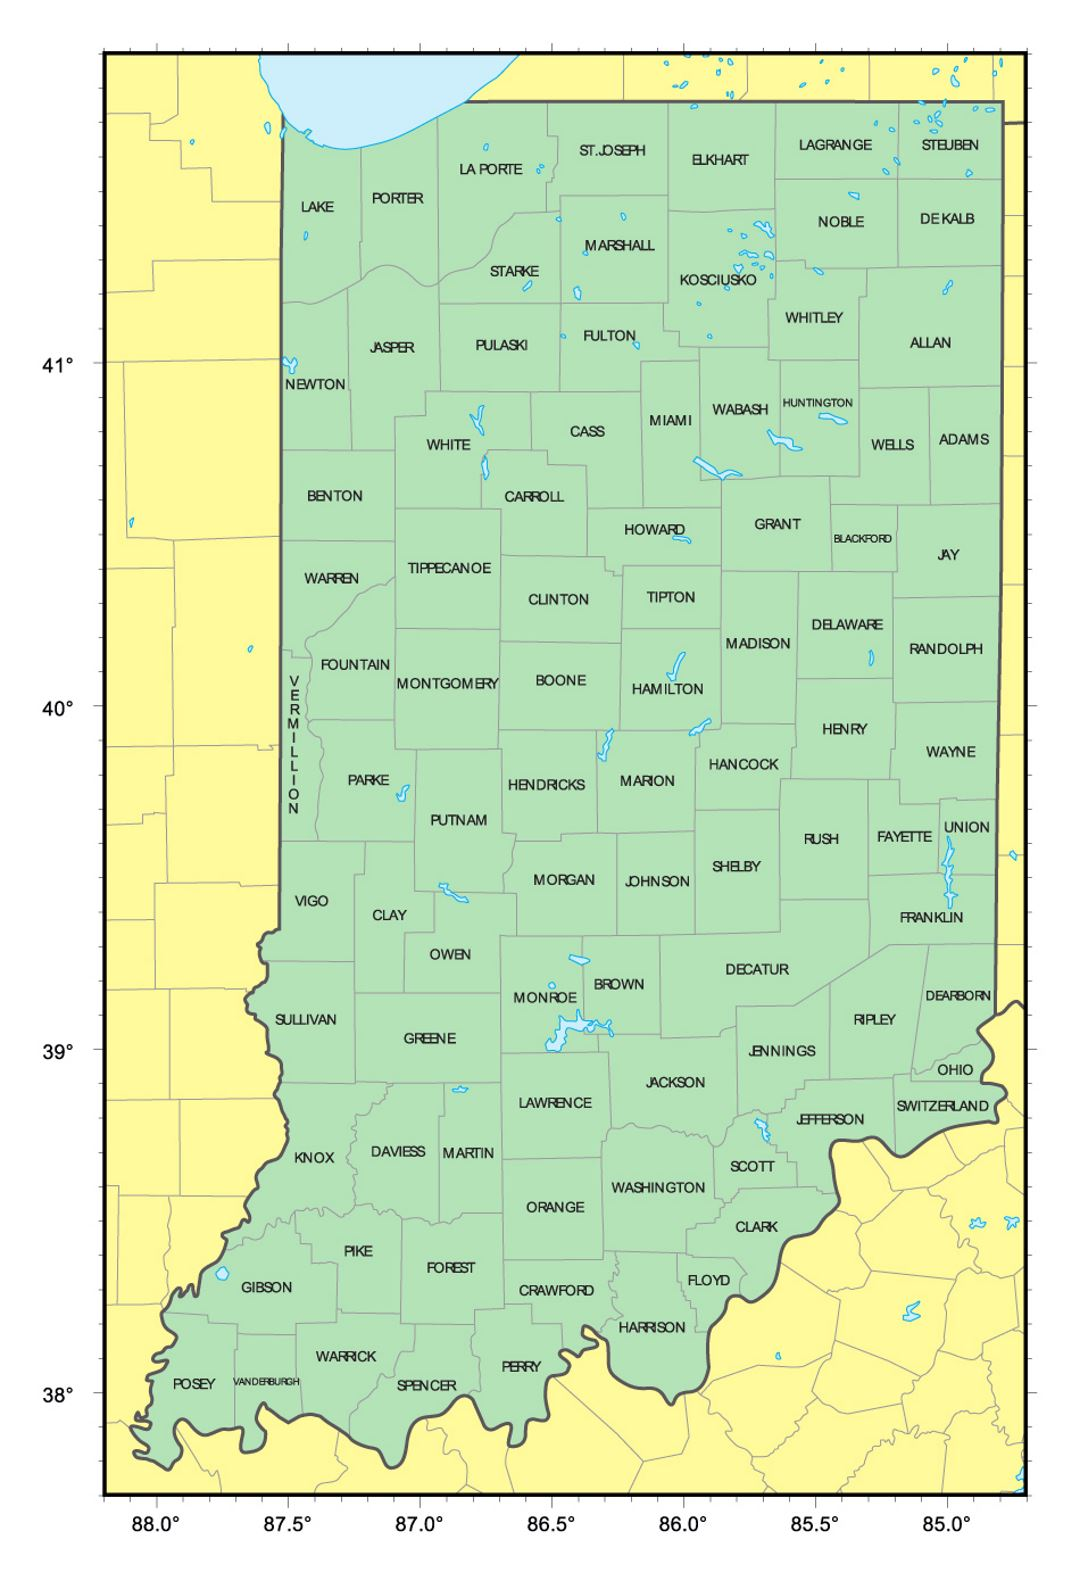 Detailed administrative map of Indiana state | Indiana state | USA ...